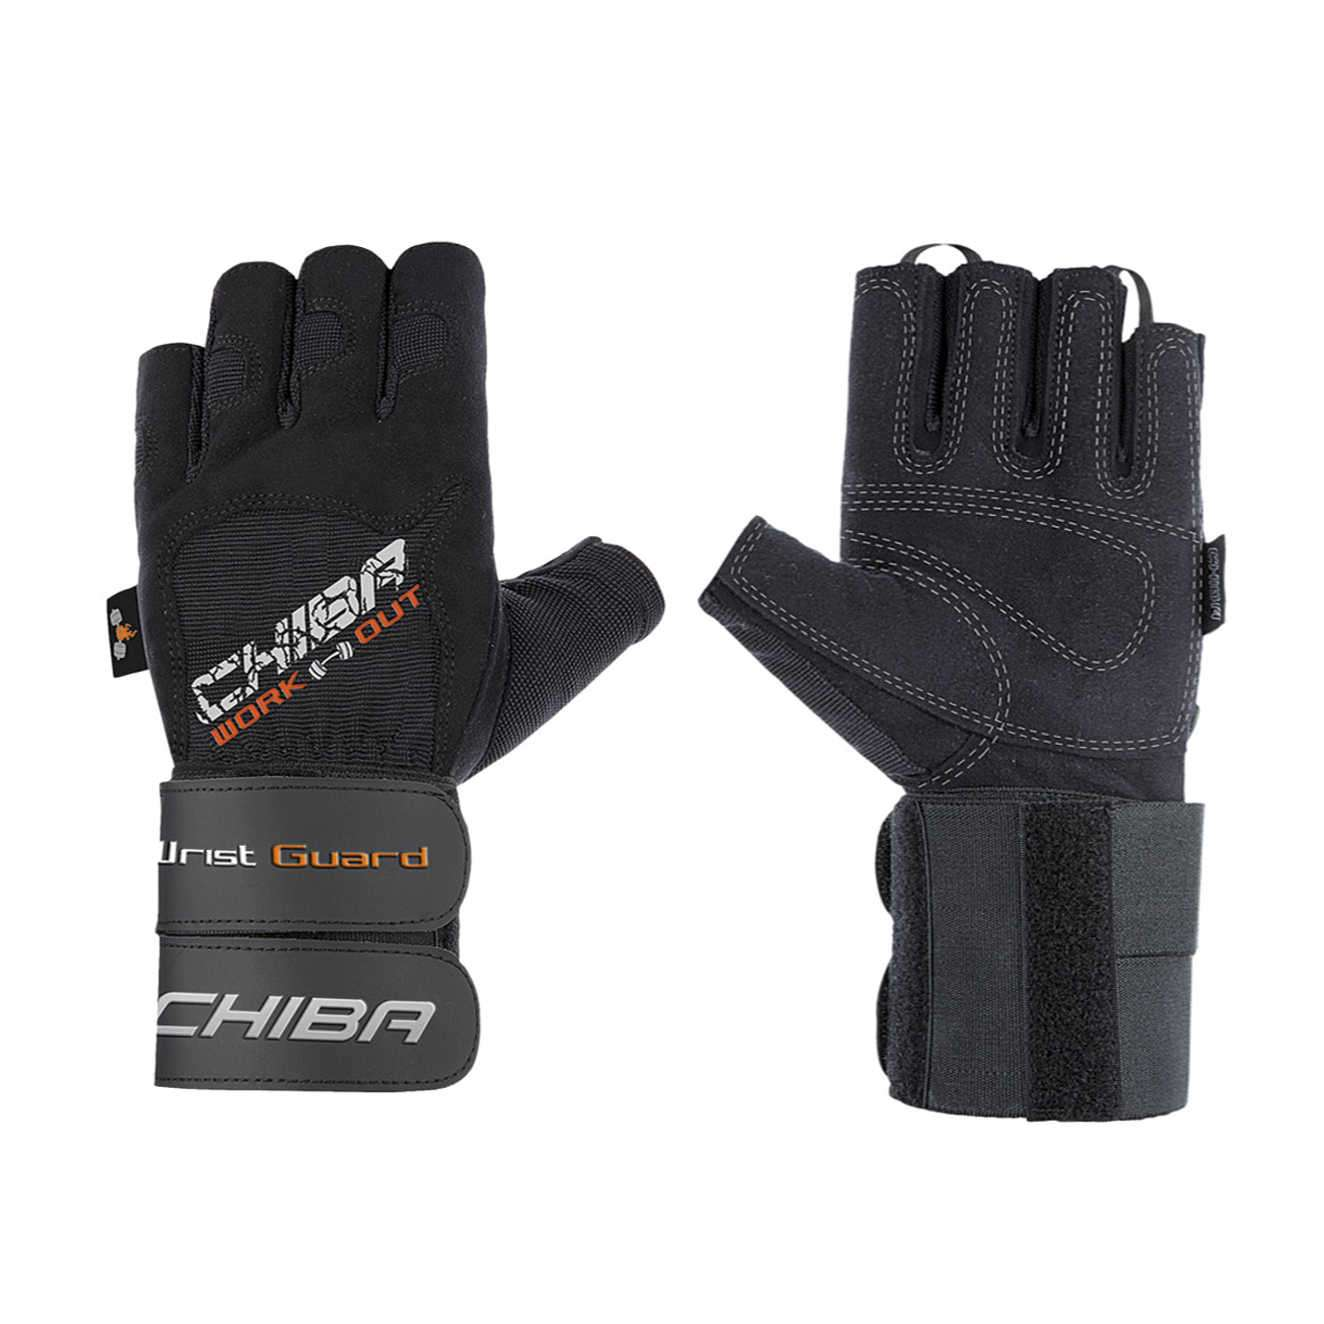 PROFESSIONAL WRISTGUARD II TRAINING GLOVES NOIR